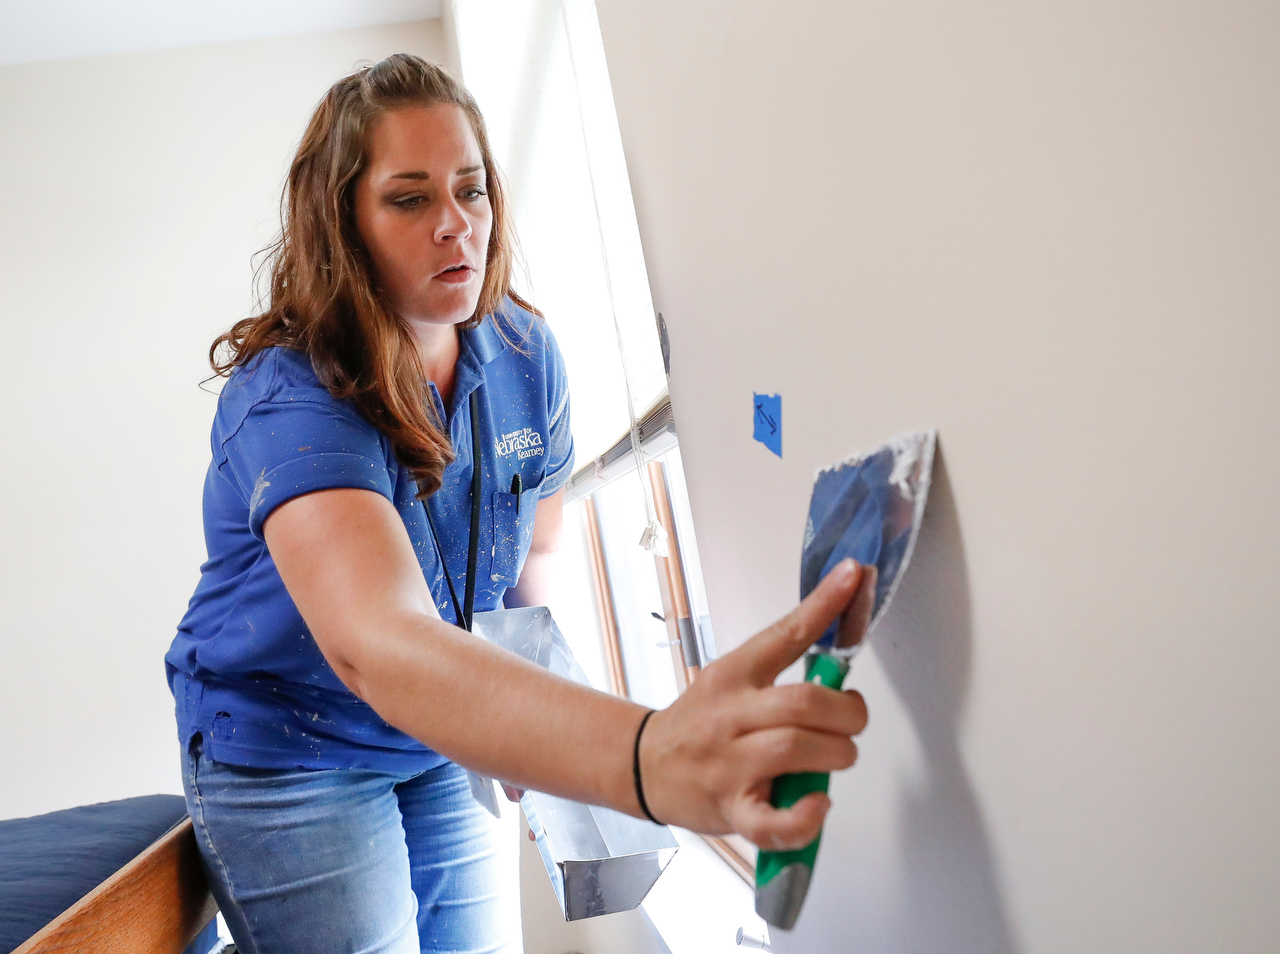 UNK Facilities Management employee Kelli Smith repairs a ding on a wall inside a residence hall.